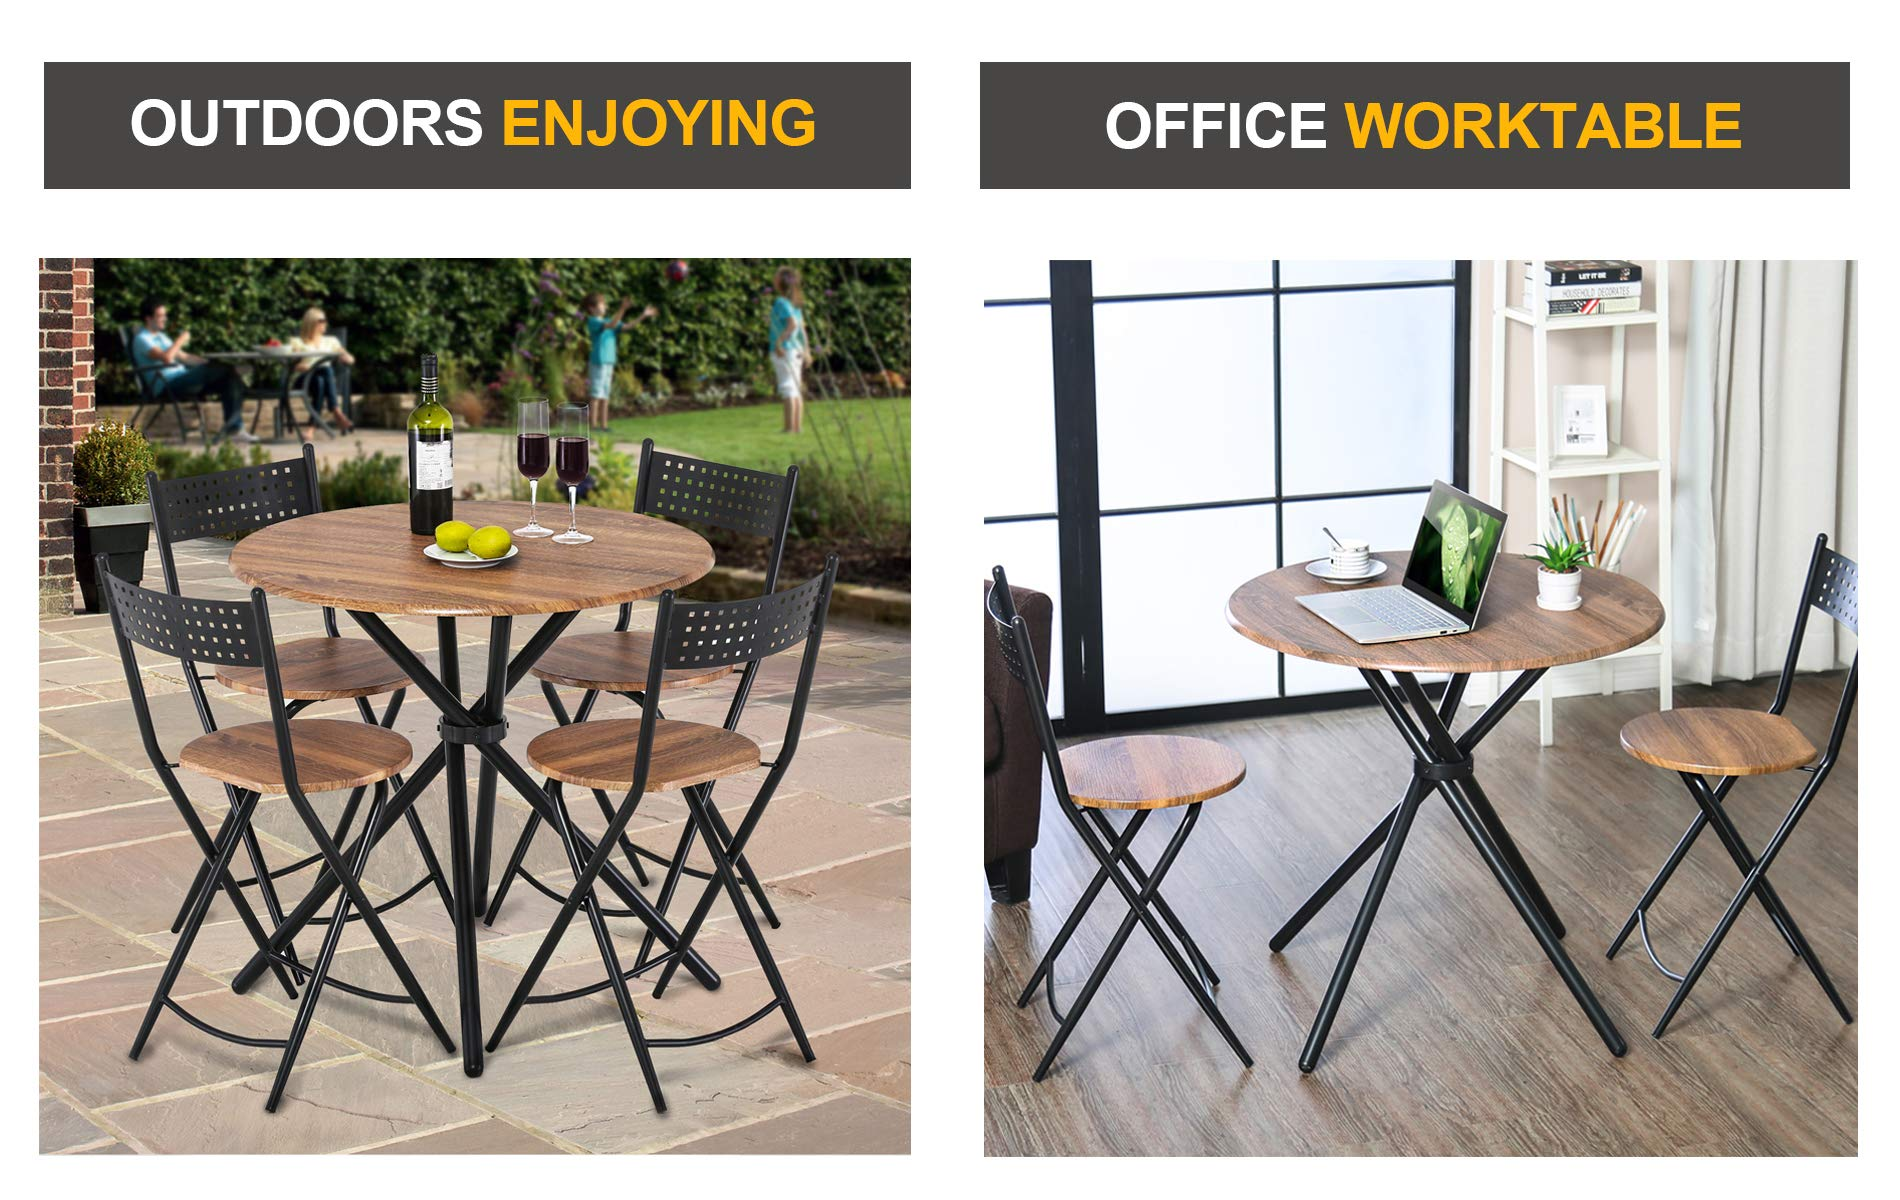 Homury 5pcs Dining Table Set Kitchen Table Kitchen Furniture Round Dining Table with 4 Round Dining Chair Dining Set Wood Coffee Table Set Home Office Table Set by Homury (Image #4)